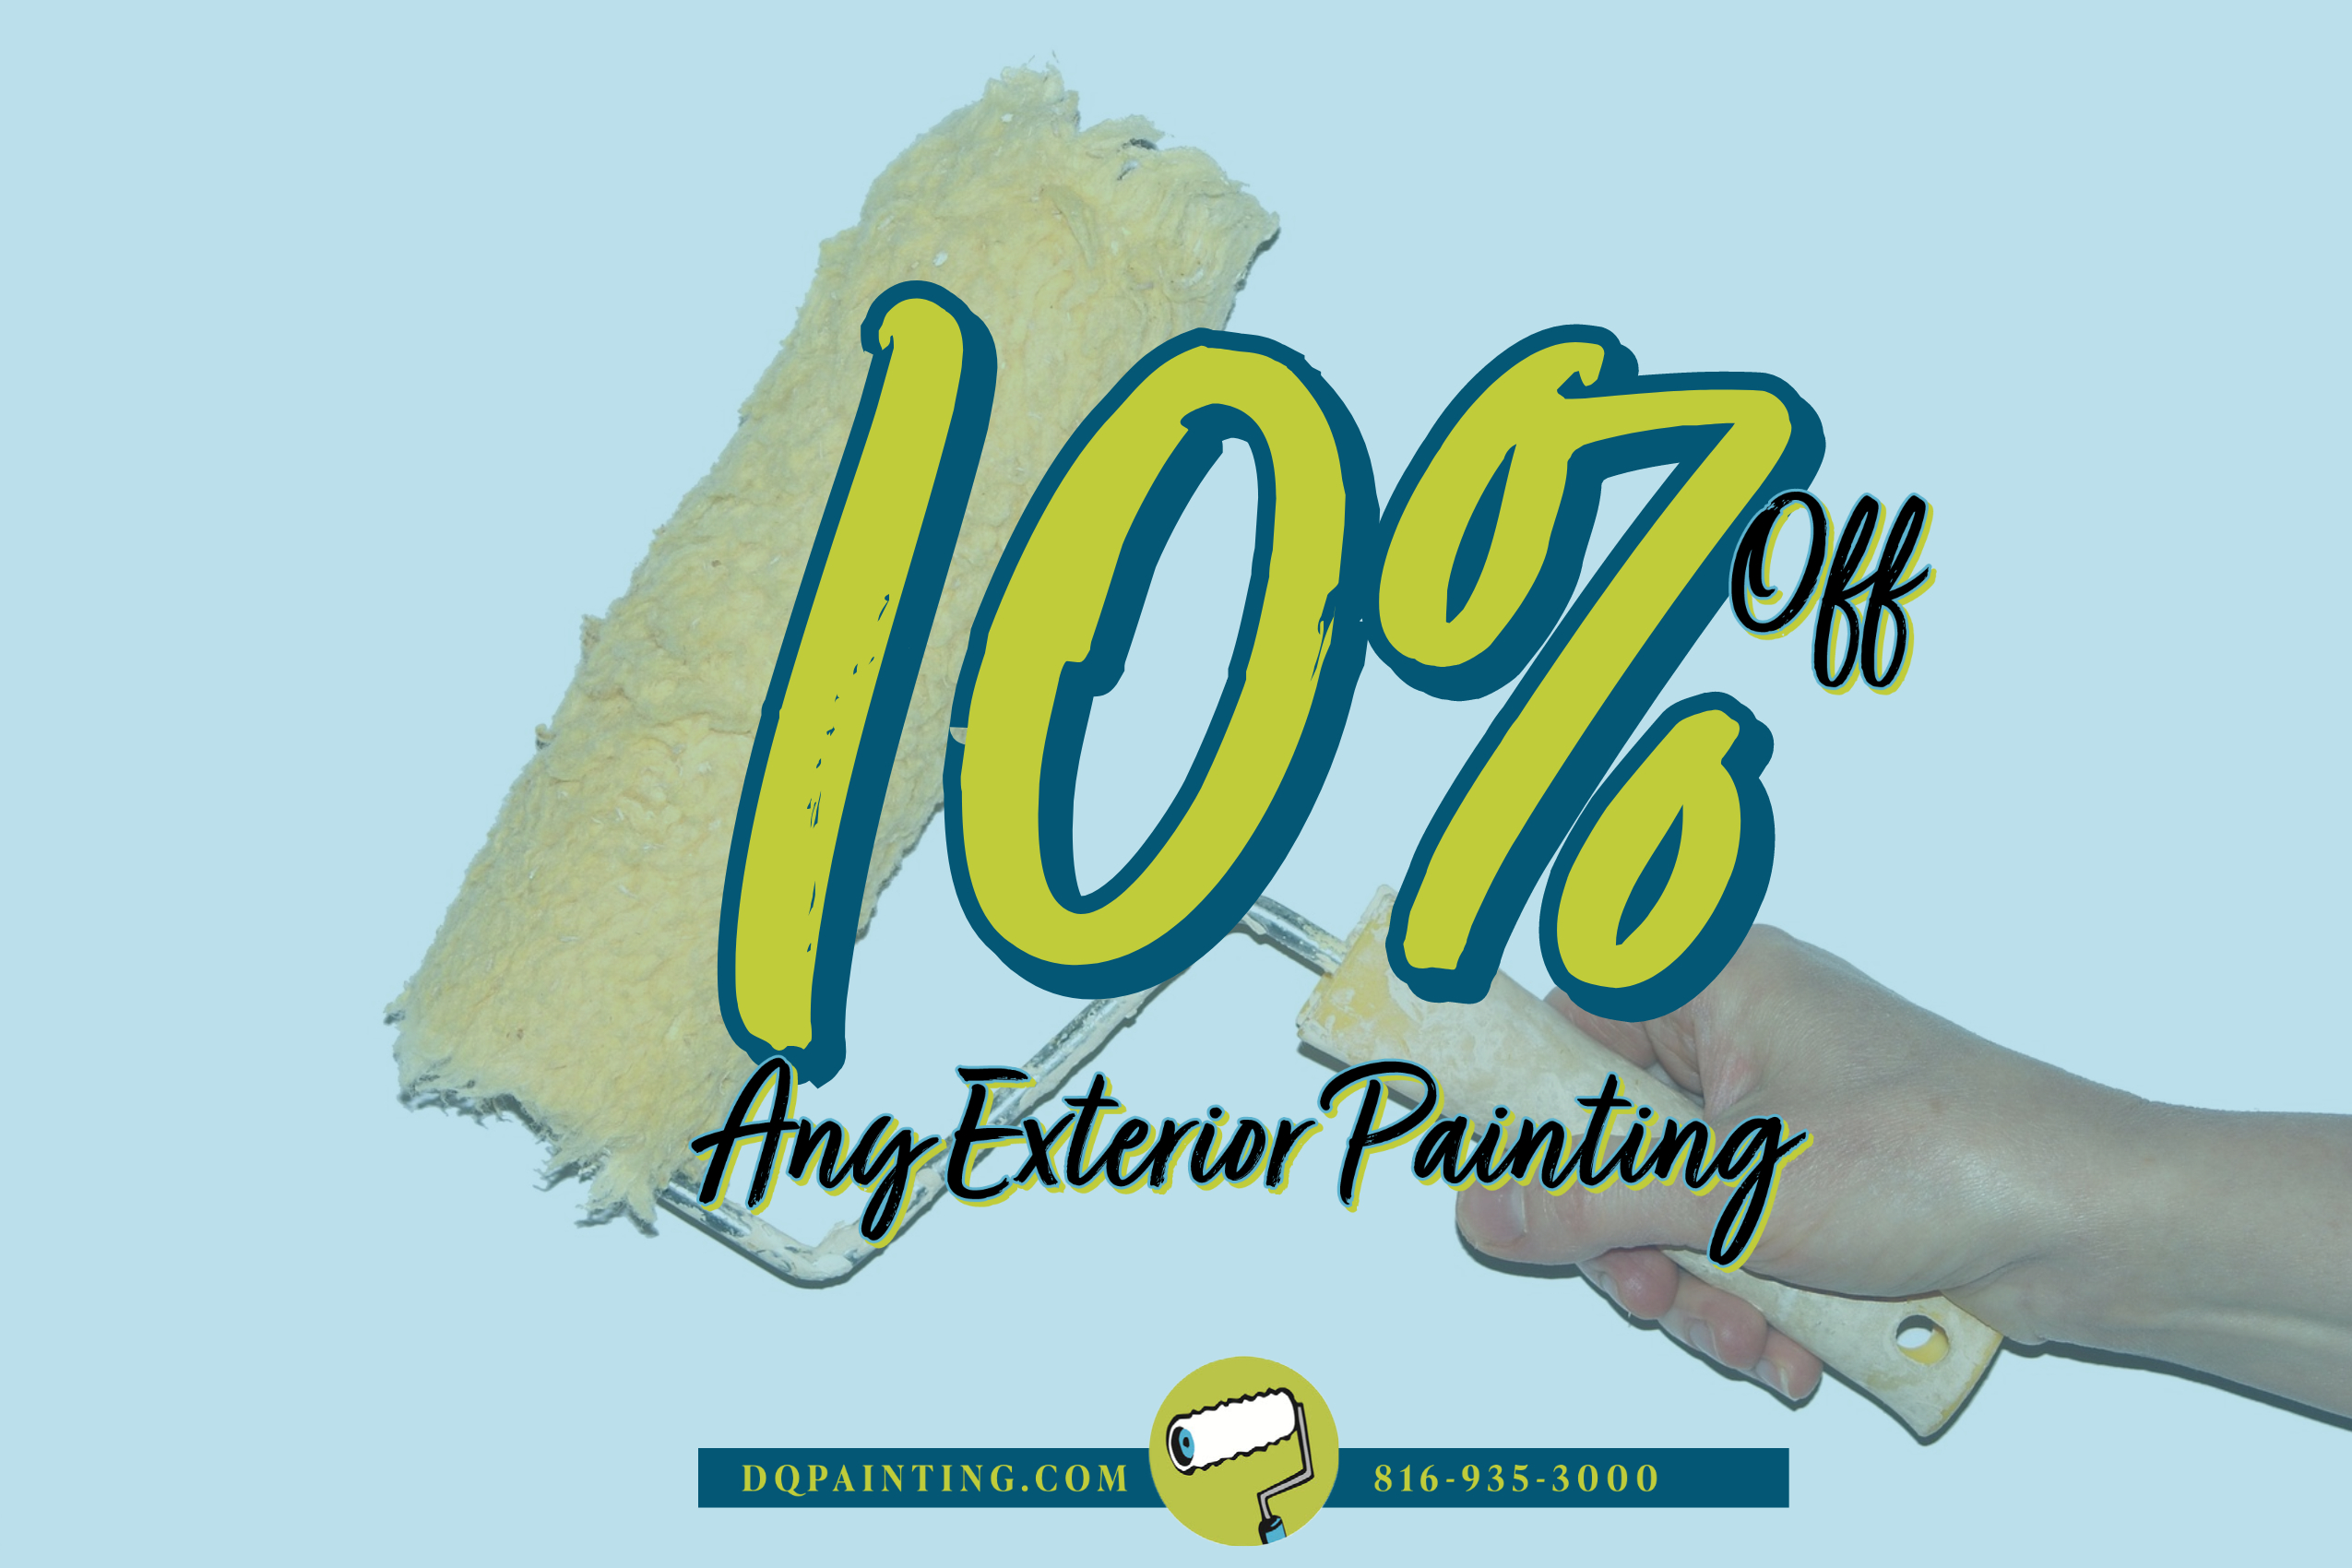 march exterior painting specials kansas city